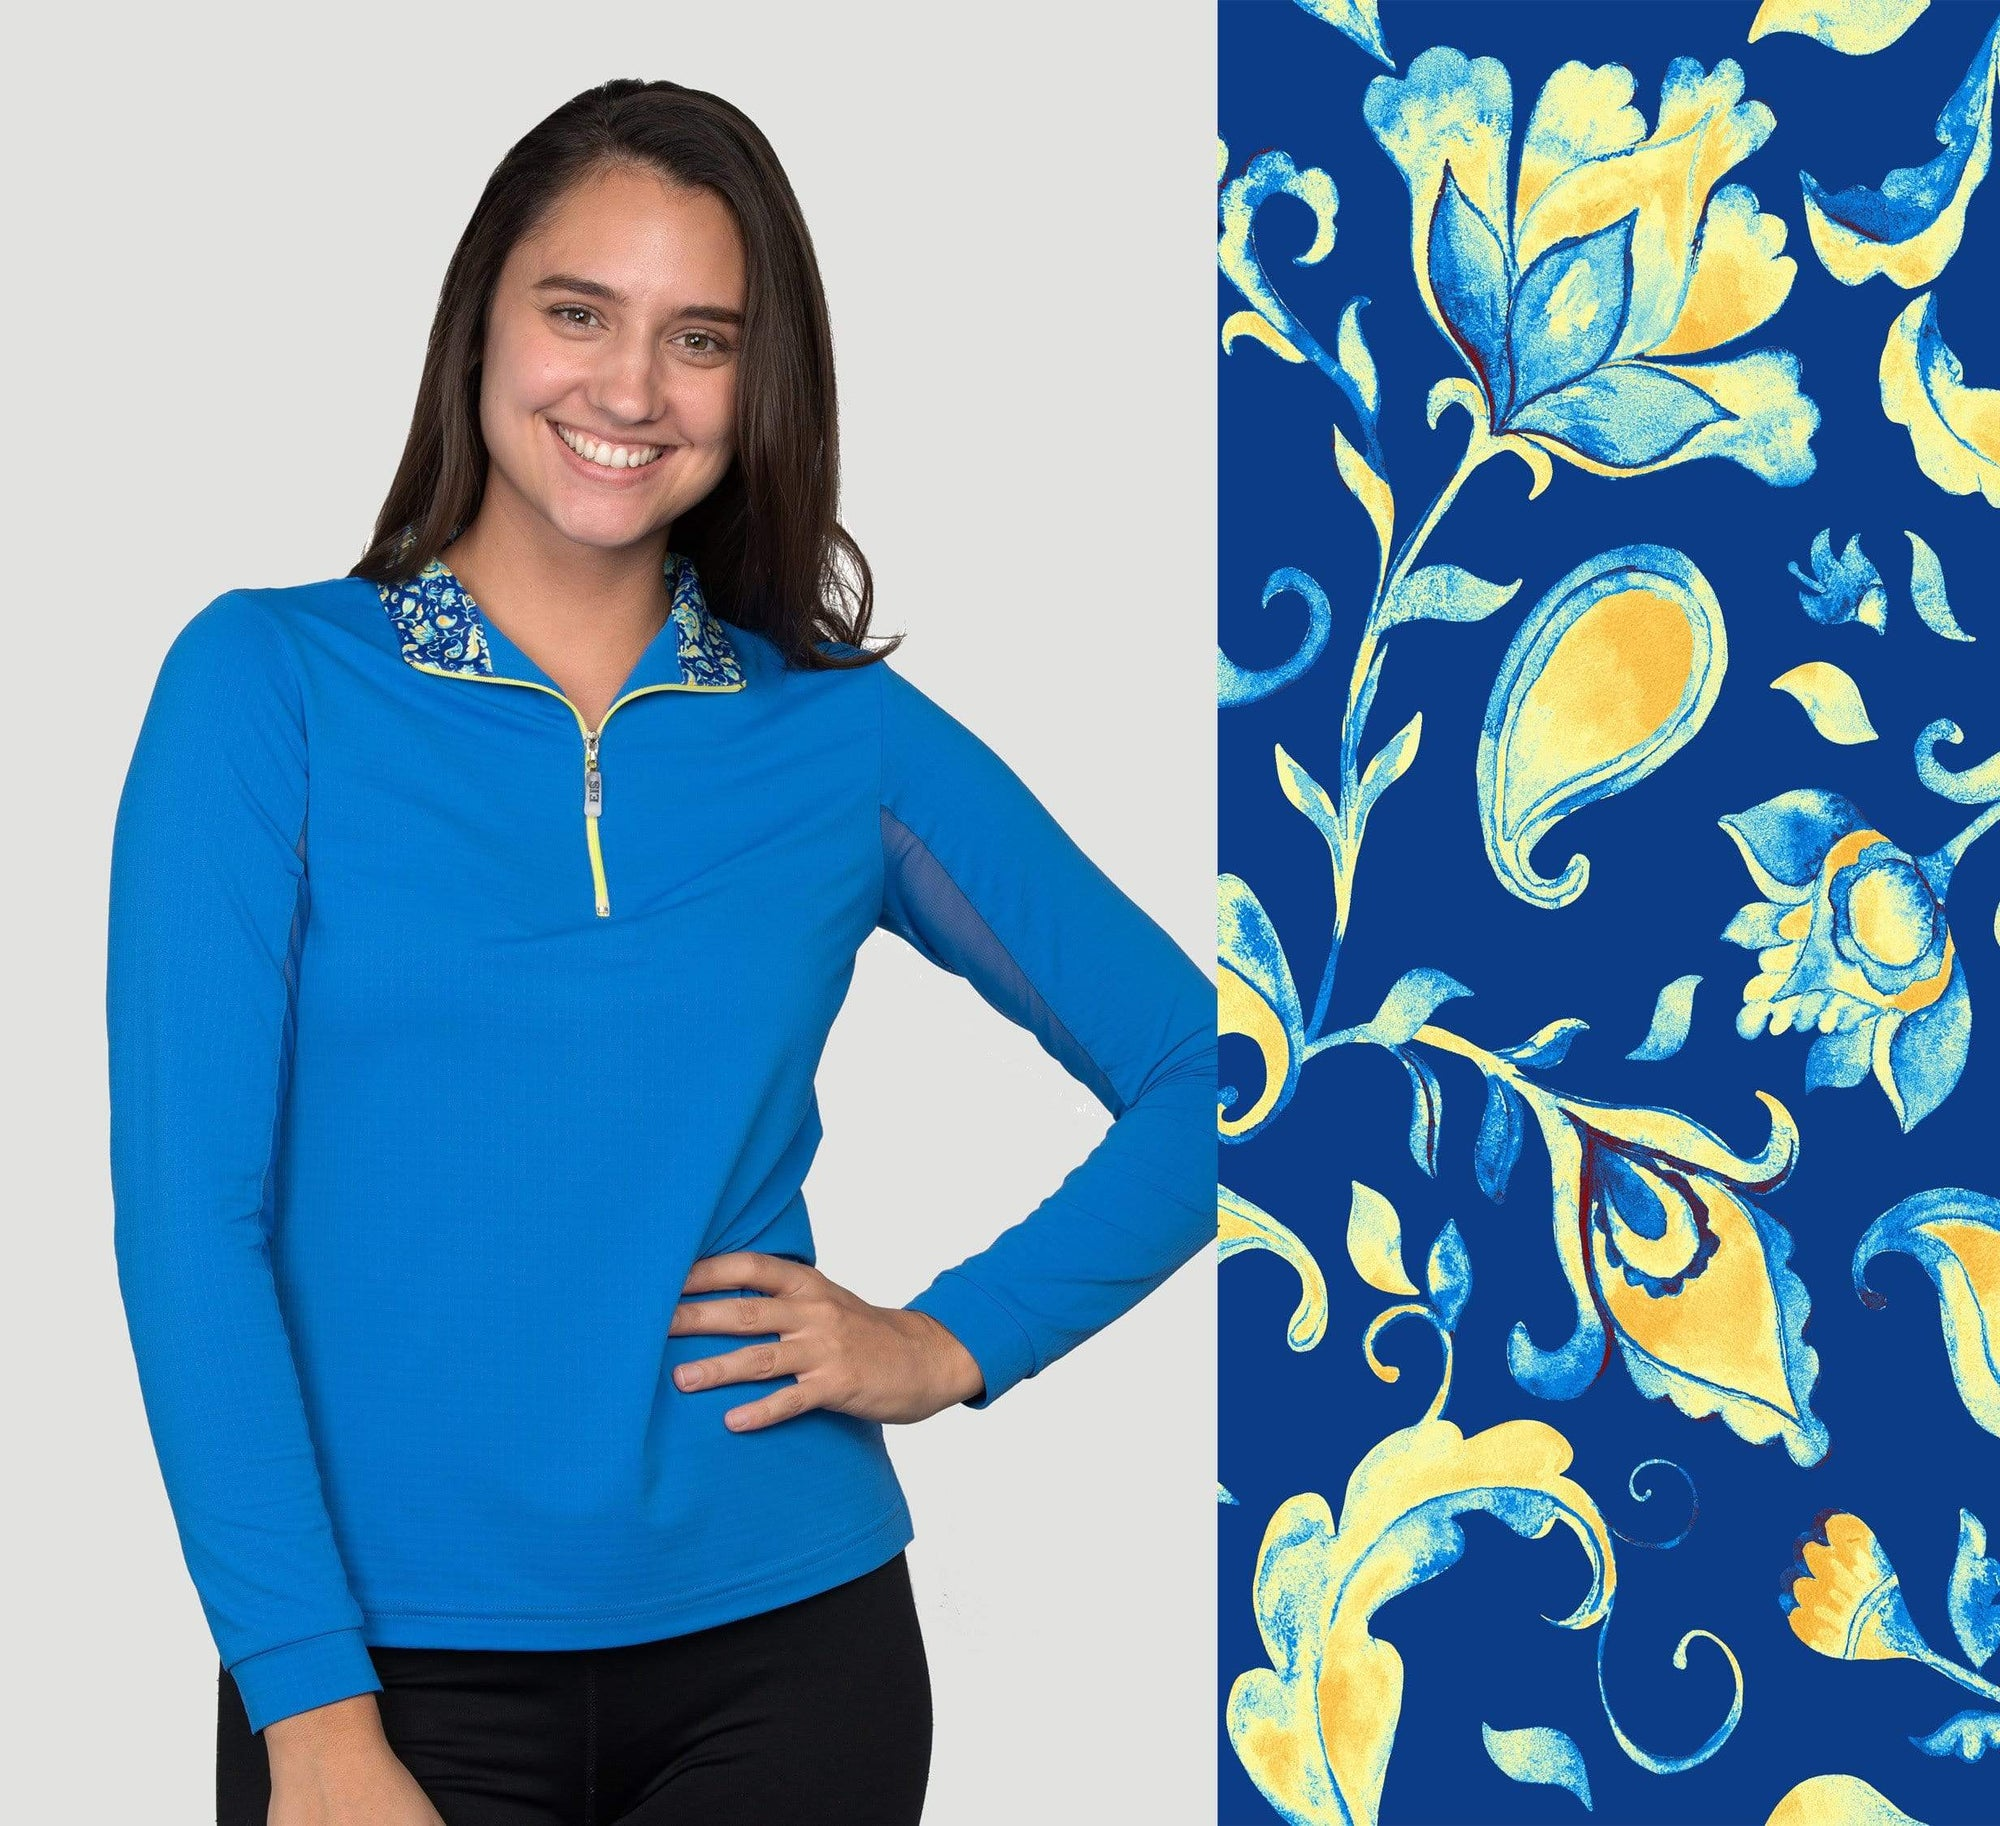 EIS Sunshirt Kentucky Blue Paisley Long Sleeve equestrian team apparel online tack store mobile tack store custom farm apparel custom show stable clothing equestrian lifestyle horse show clothing riding clothes Wear a flattering sunshirt when you ride | made in the USA horses equestrian tack store